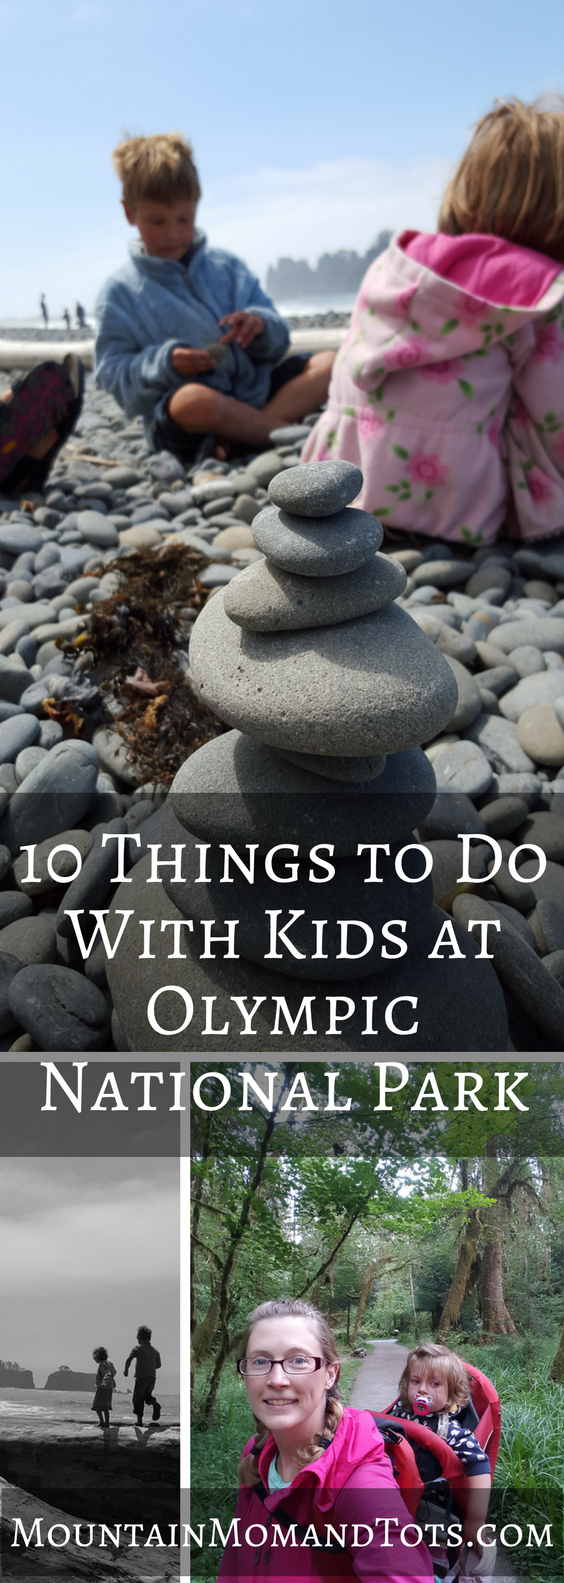 Ten Things to Do With Kids at Olympic National Park